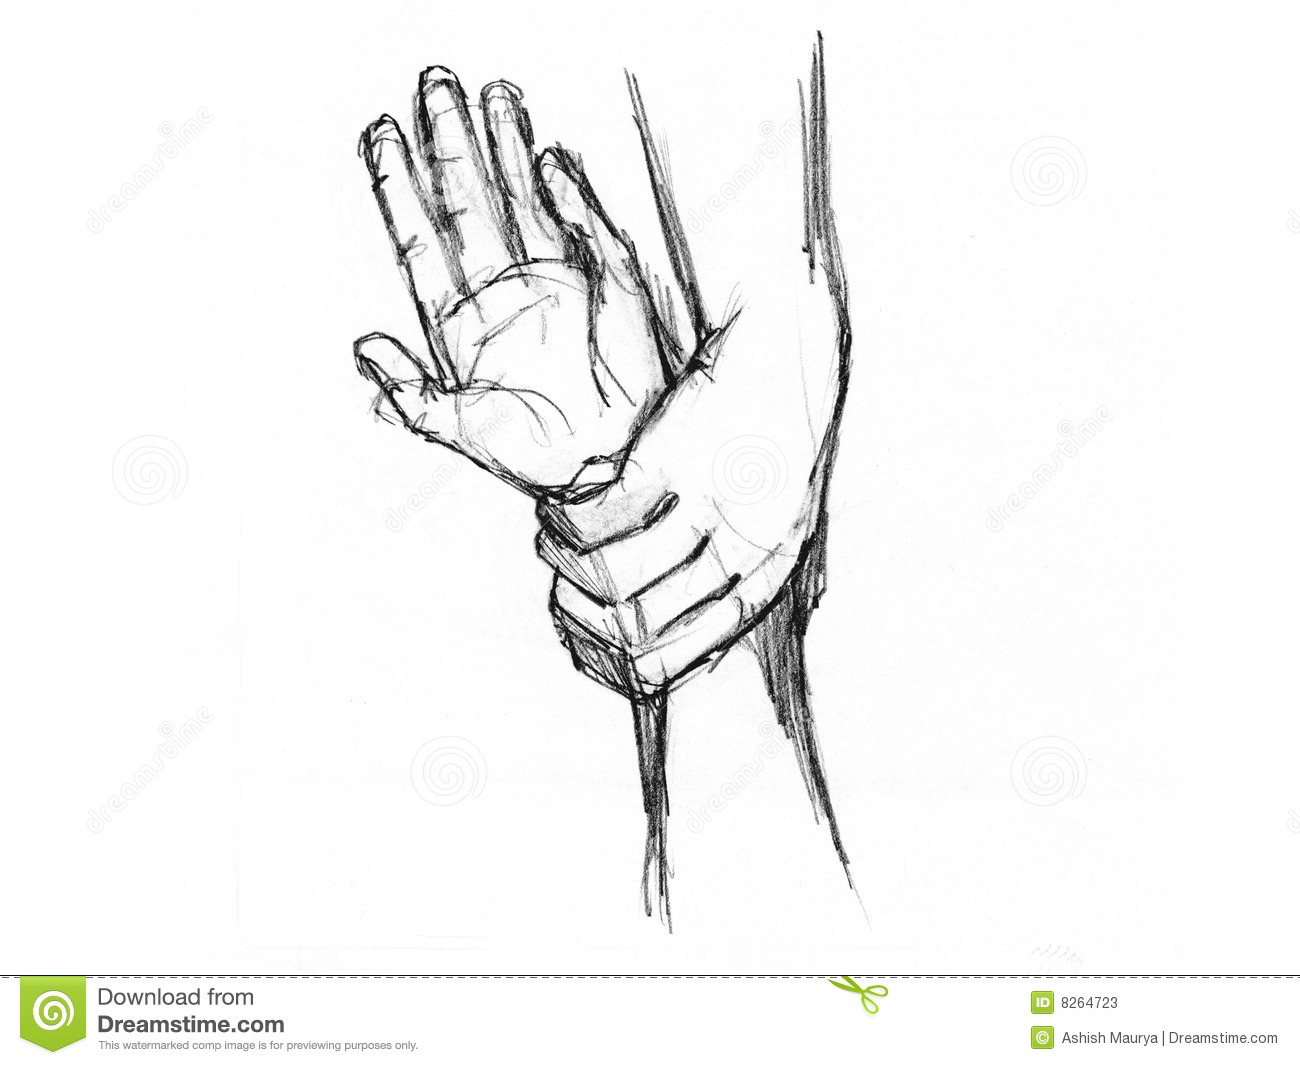 Sketch of hands stock illustration. Illustration of five